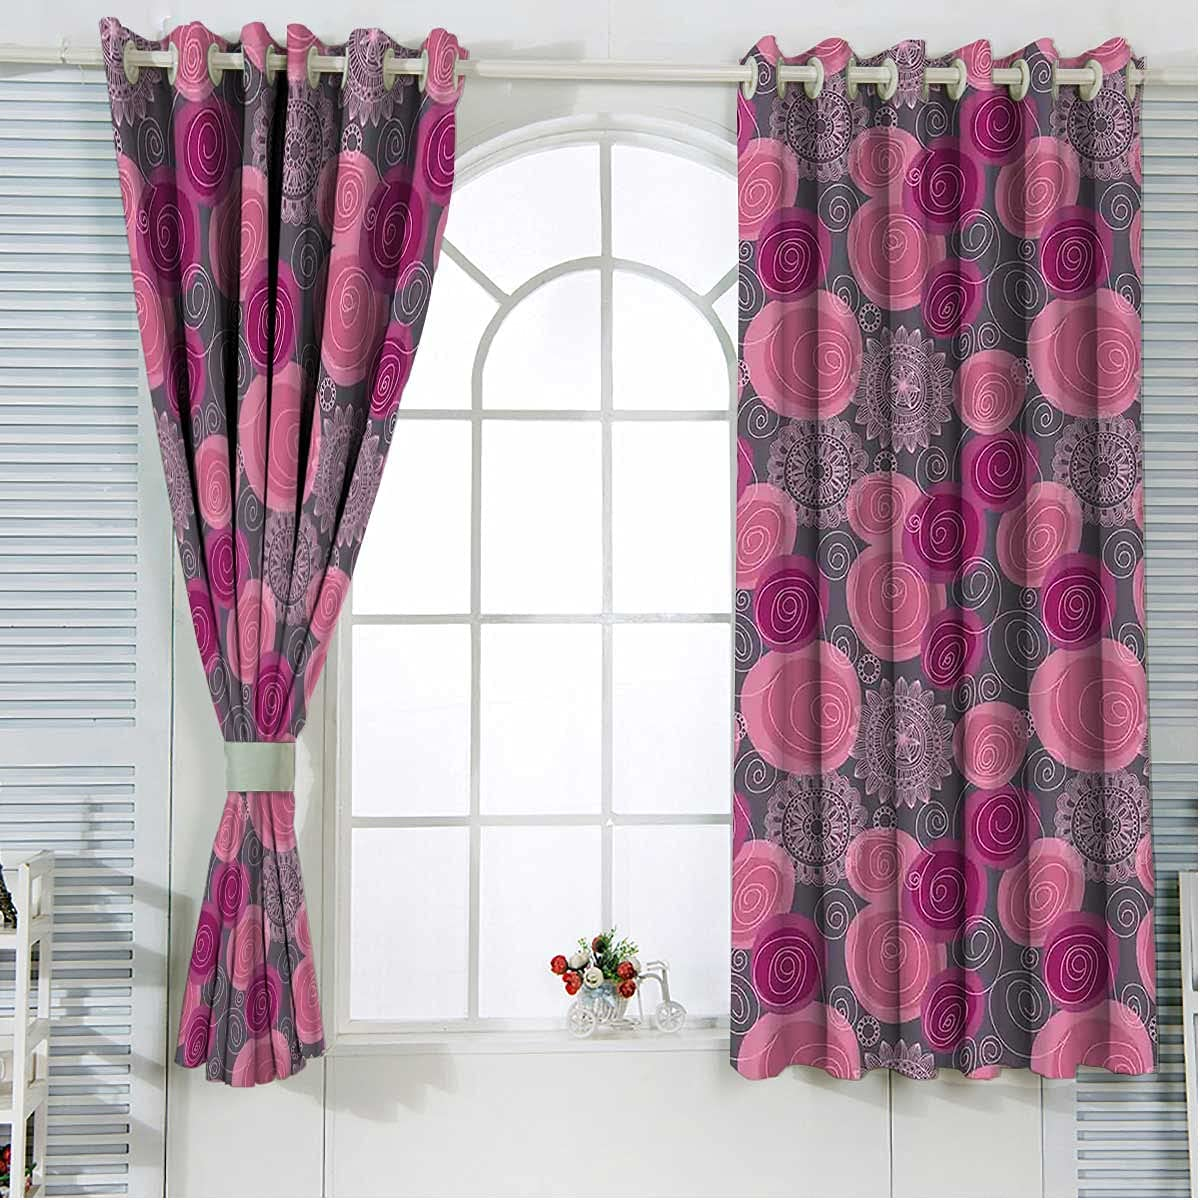 Save money New product!! Blackout Curtain Liners 63 Inches Circle Lace Swirled Bl Length